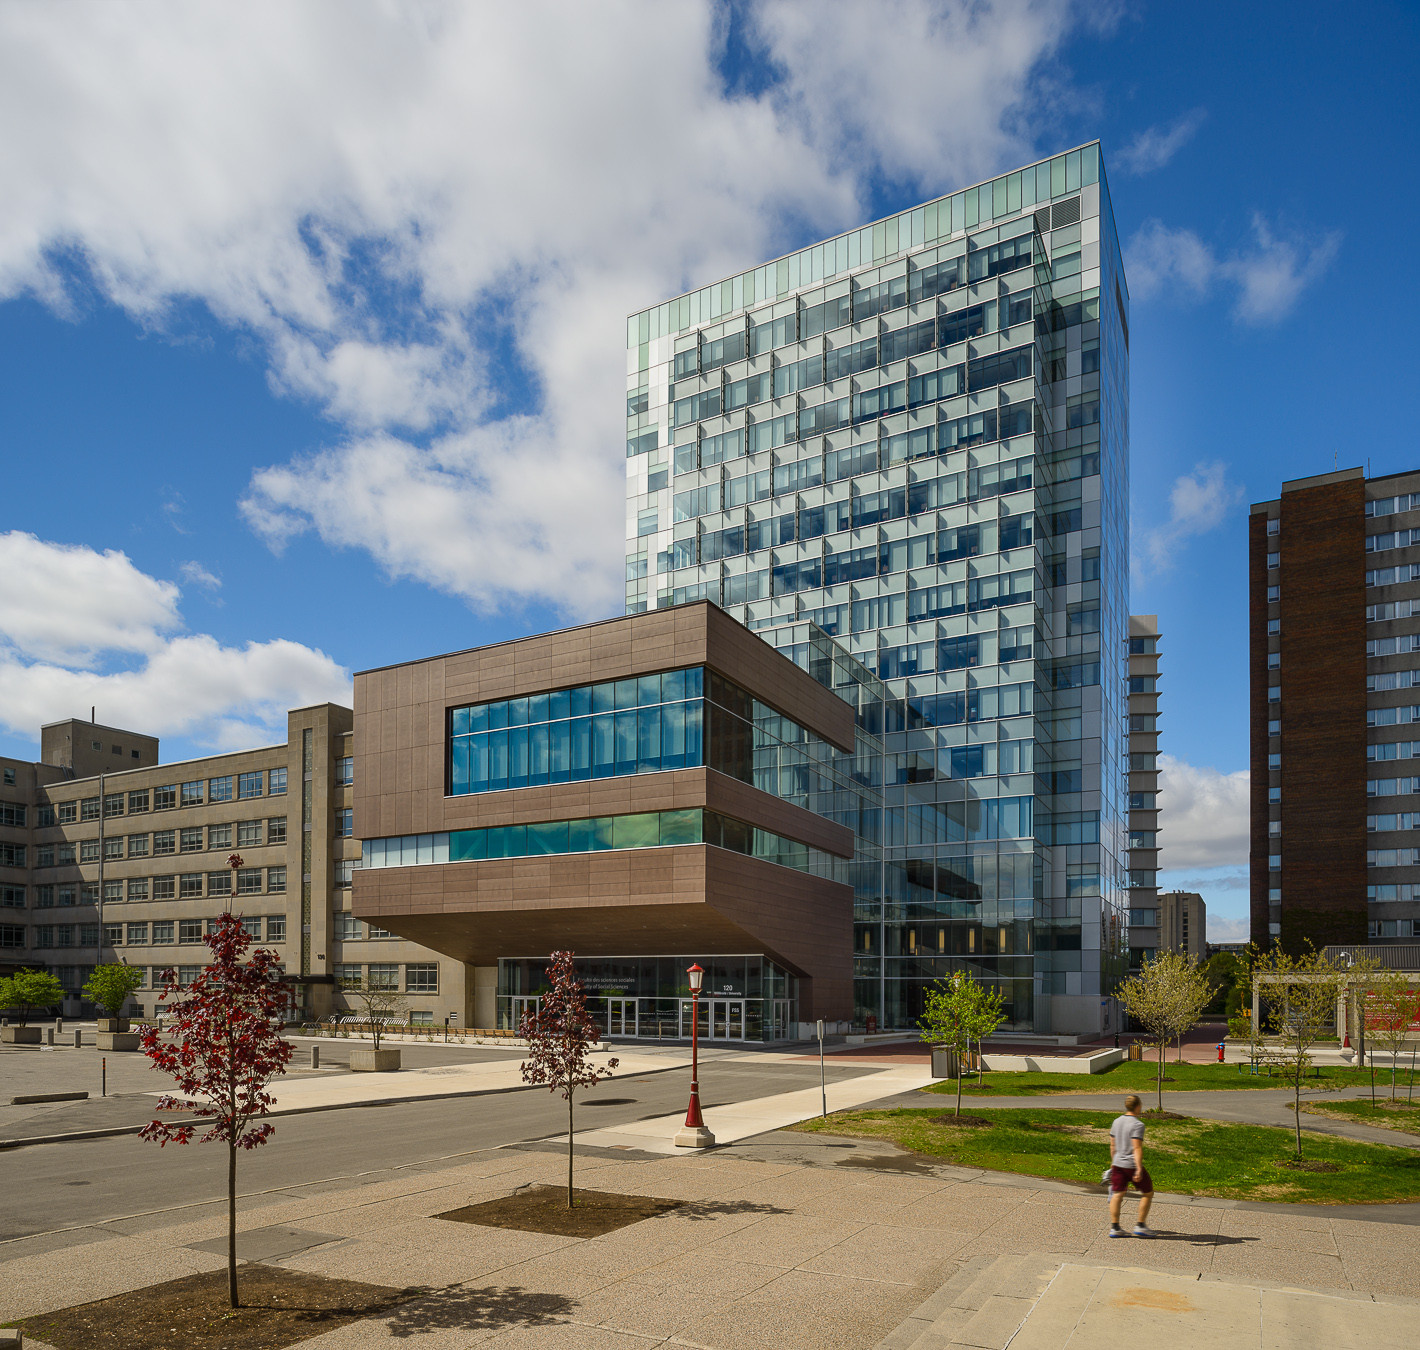 University of Ottawa / KWC Architects + Diamond Schmitt Architects, Courtesy of Diamond Schmitt Architects